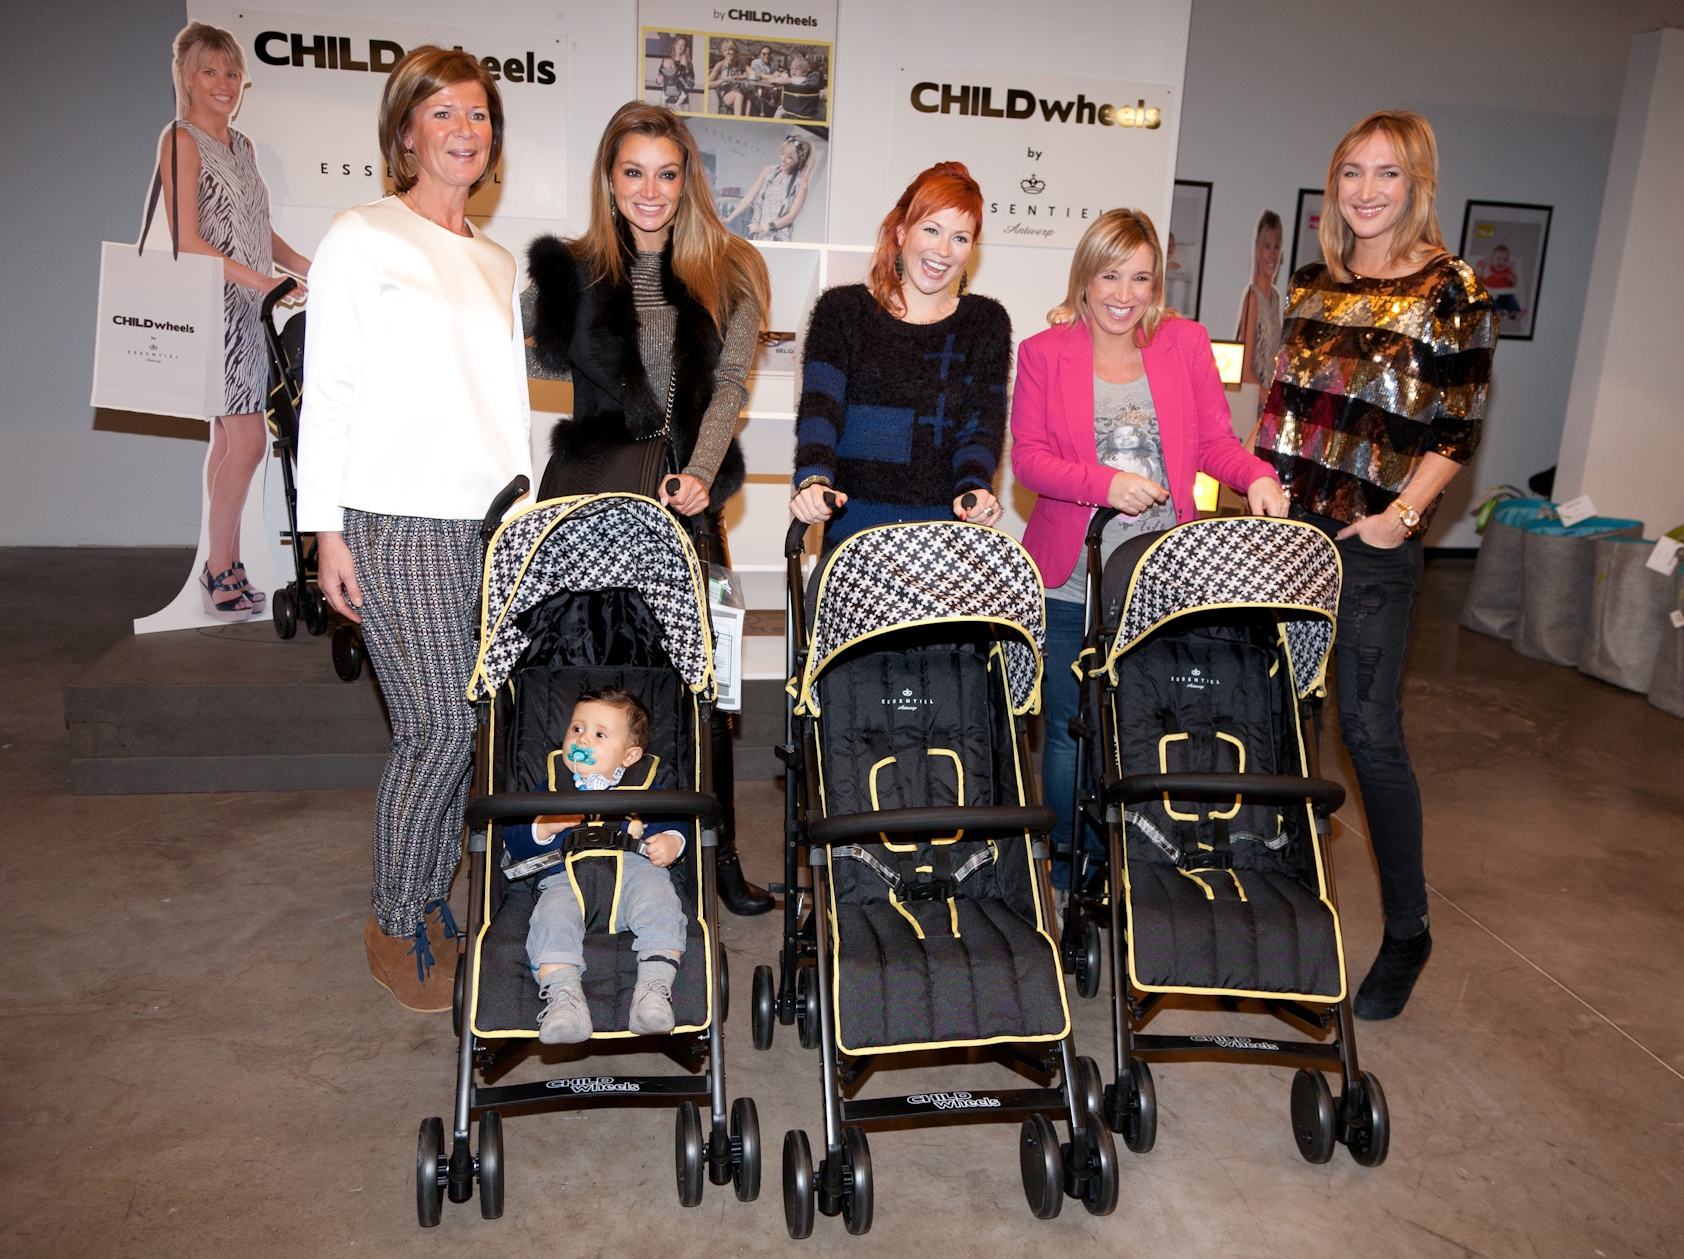 babytrendwatcher VIP lauch Childwheels by Essentiel-99